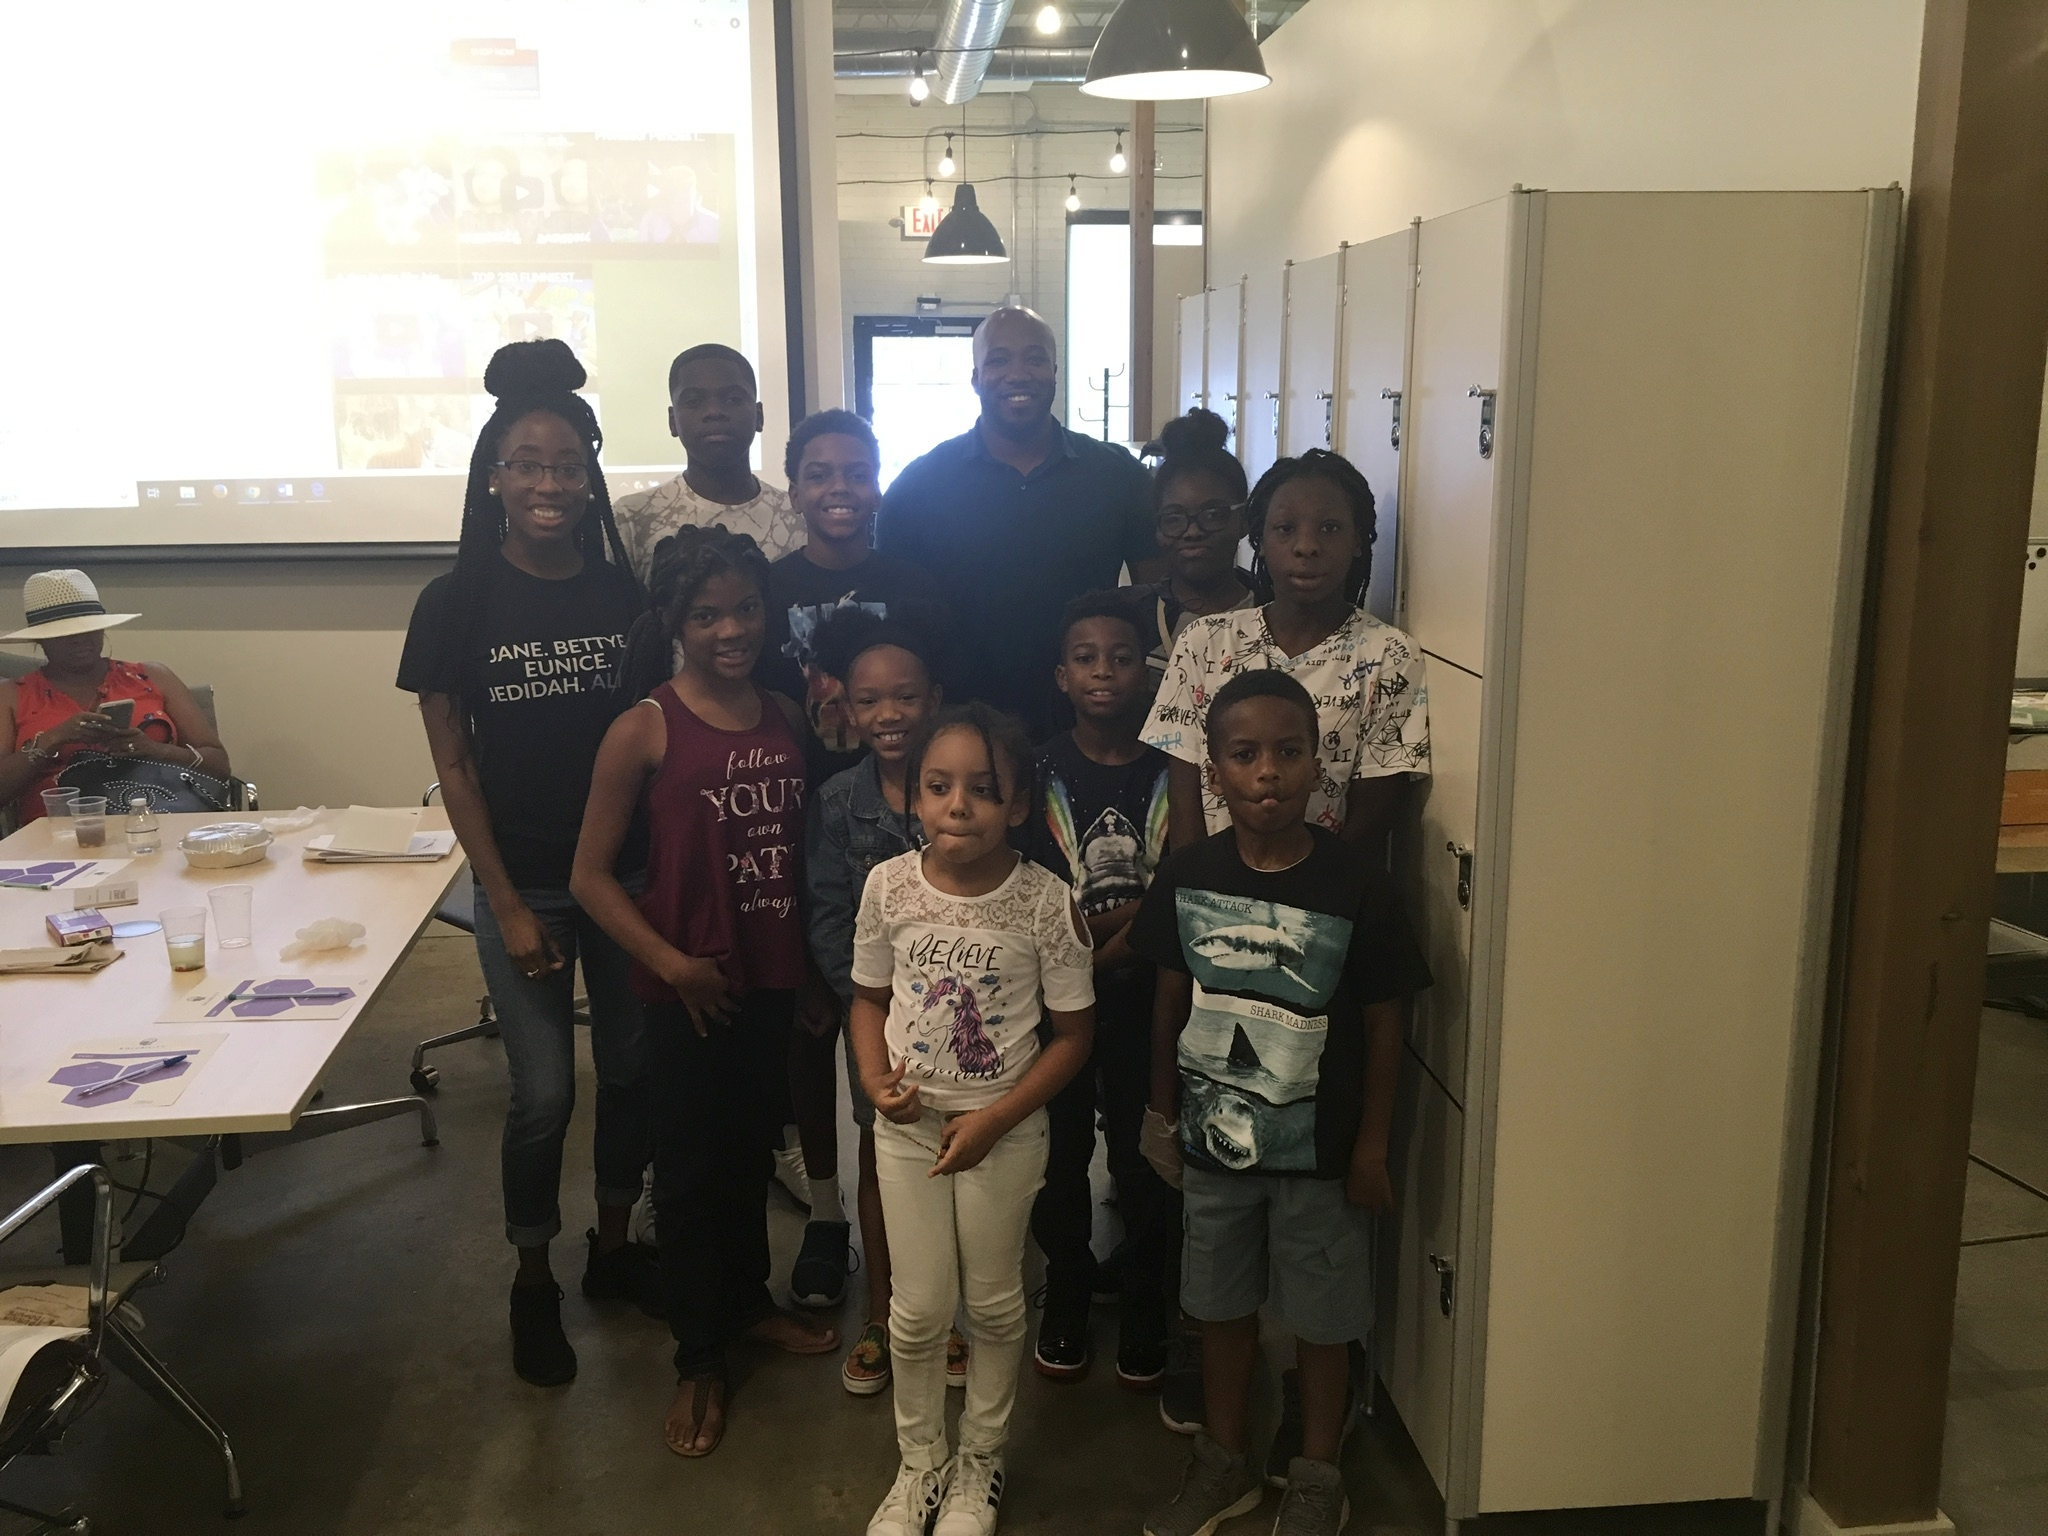 kids and teens tech and science day